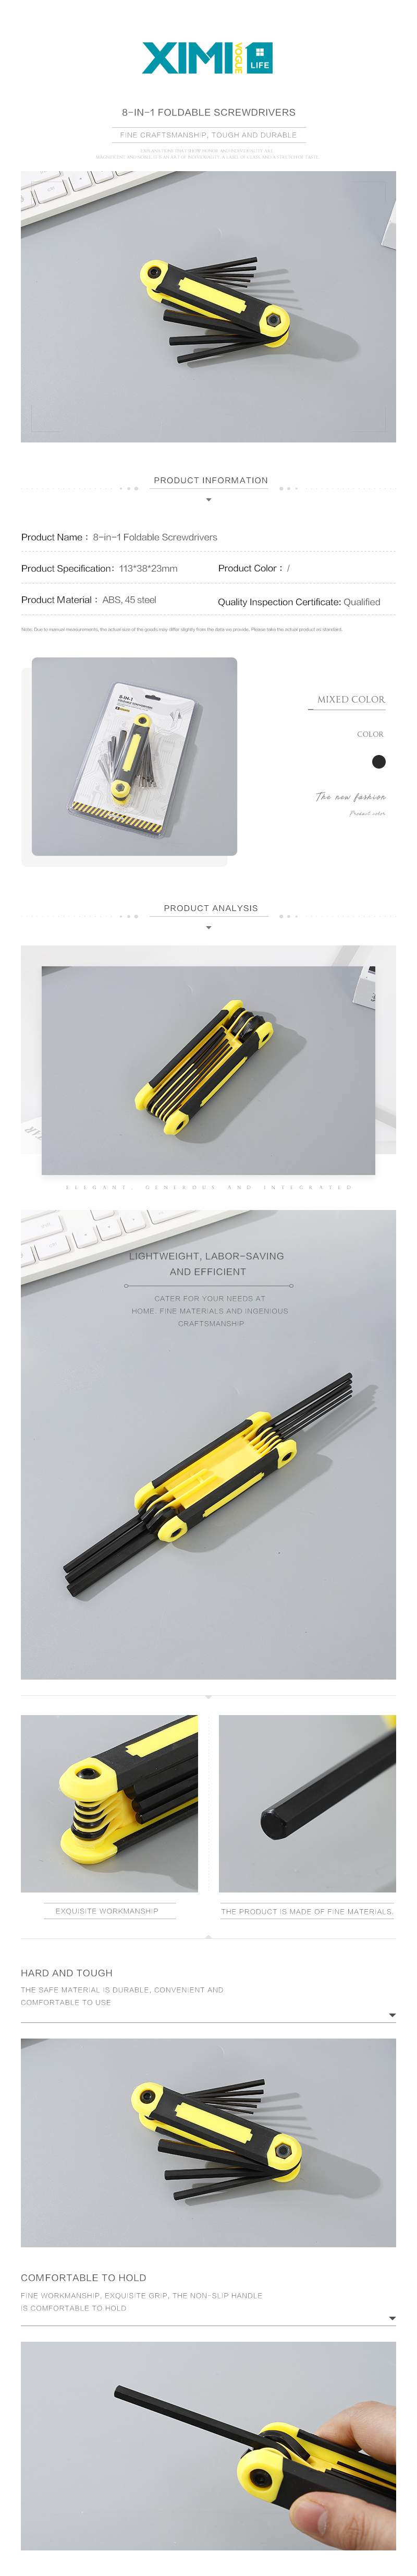 8-in-1 Foldable Screwdrivers